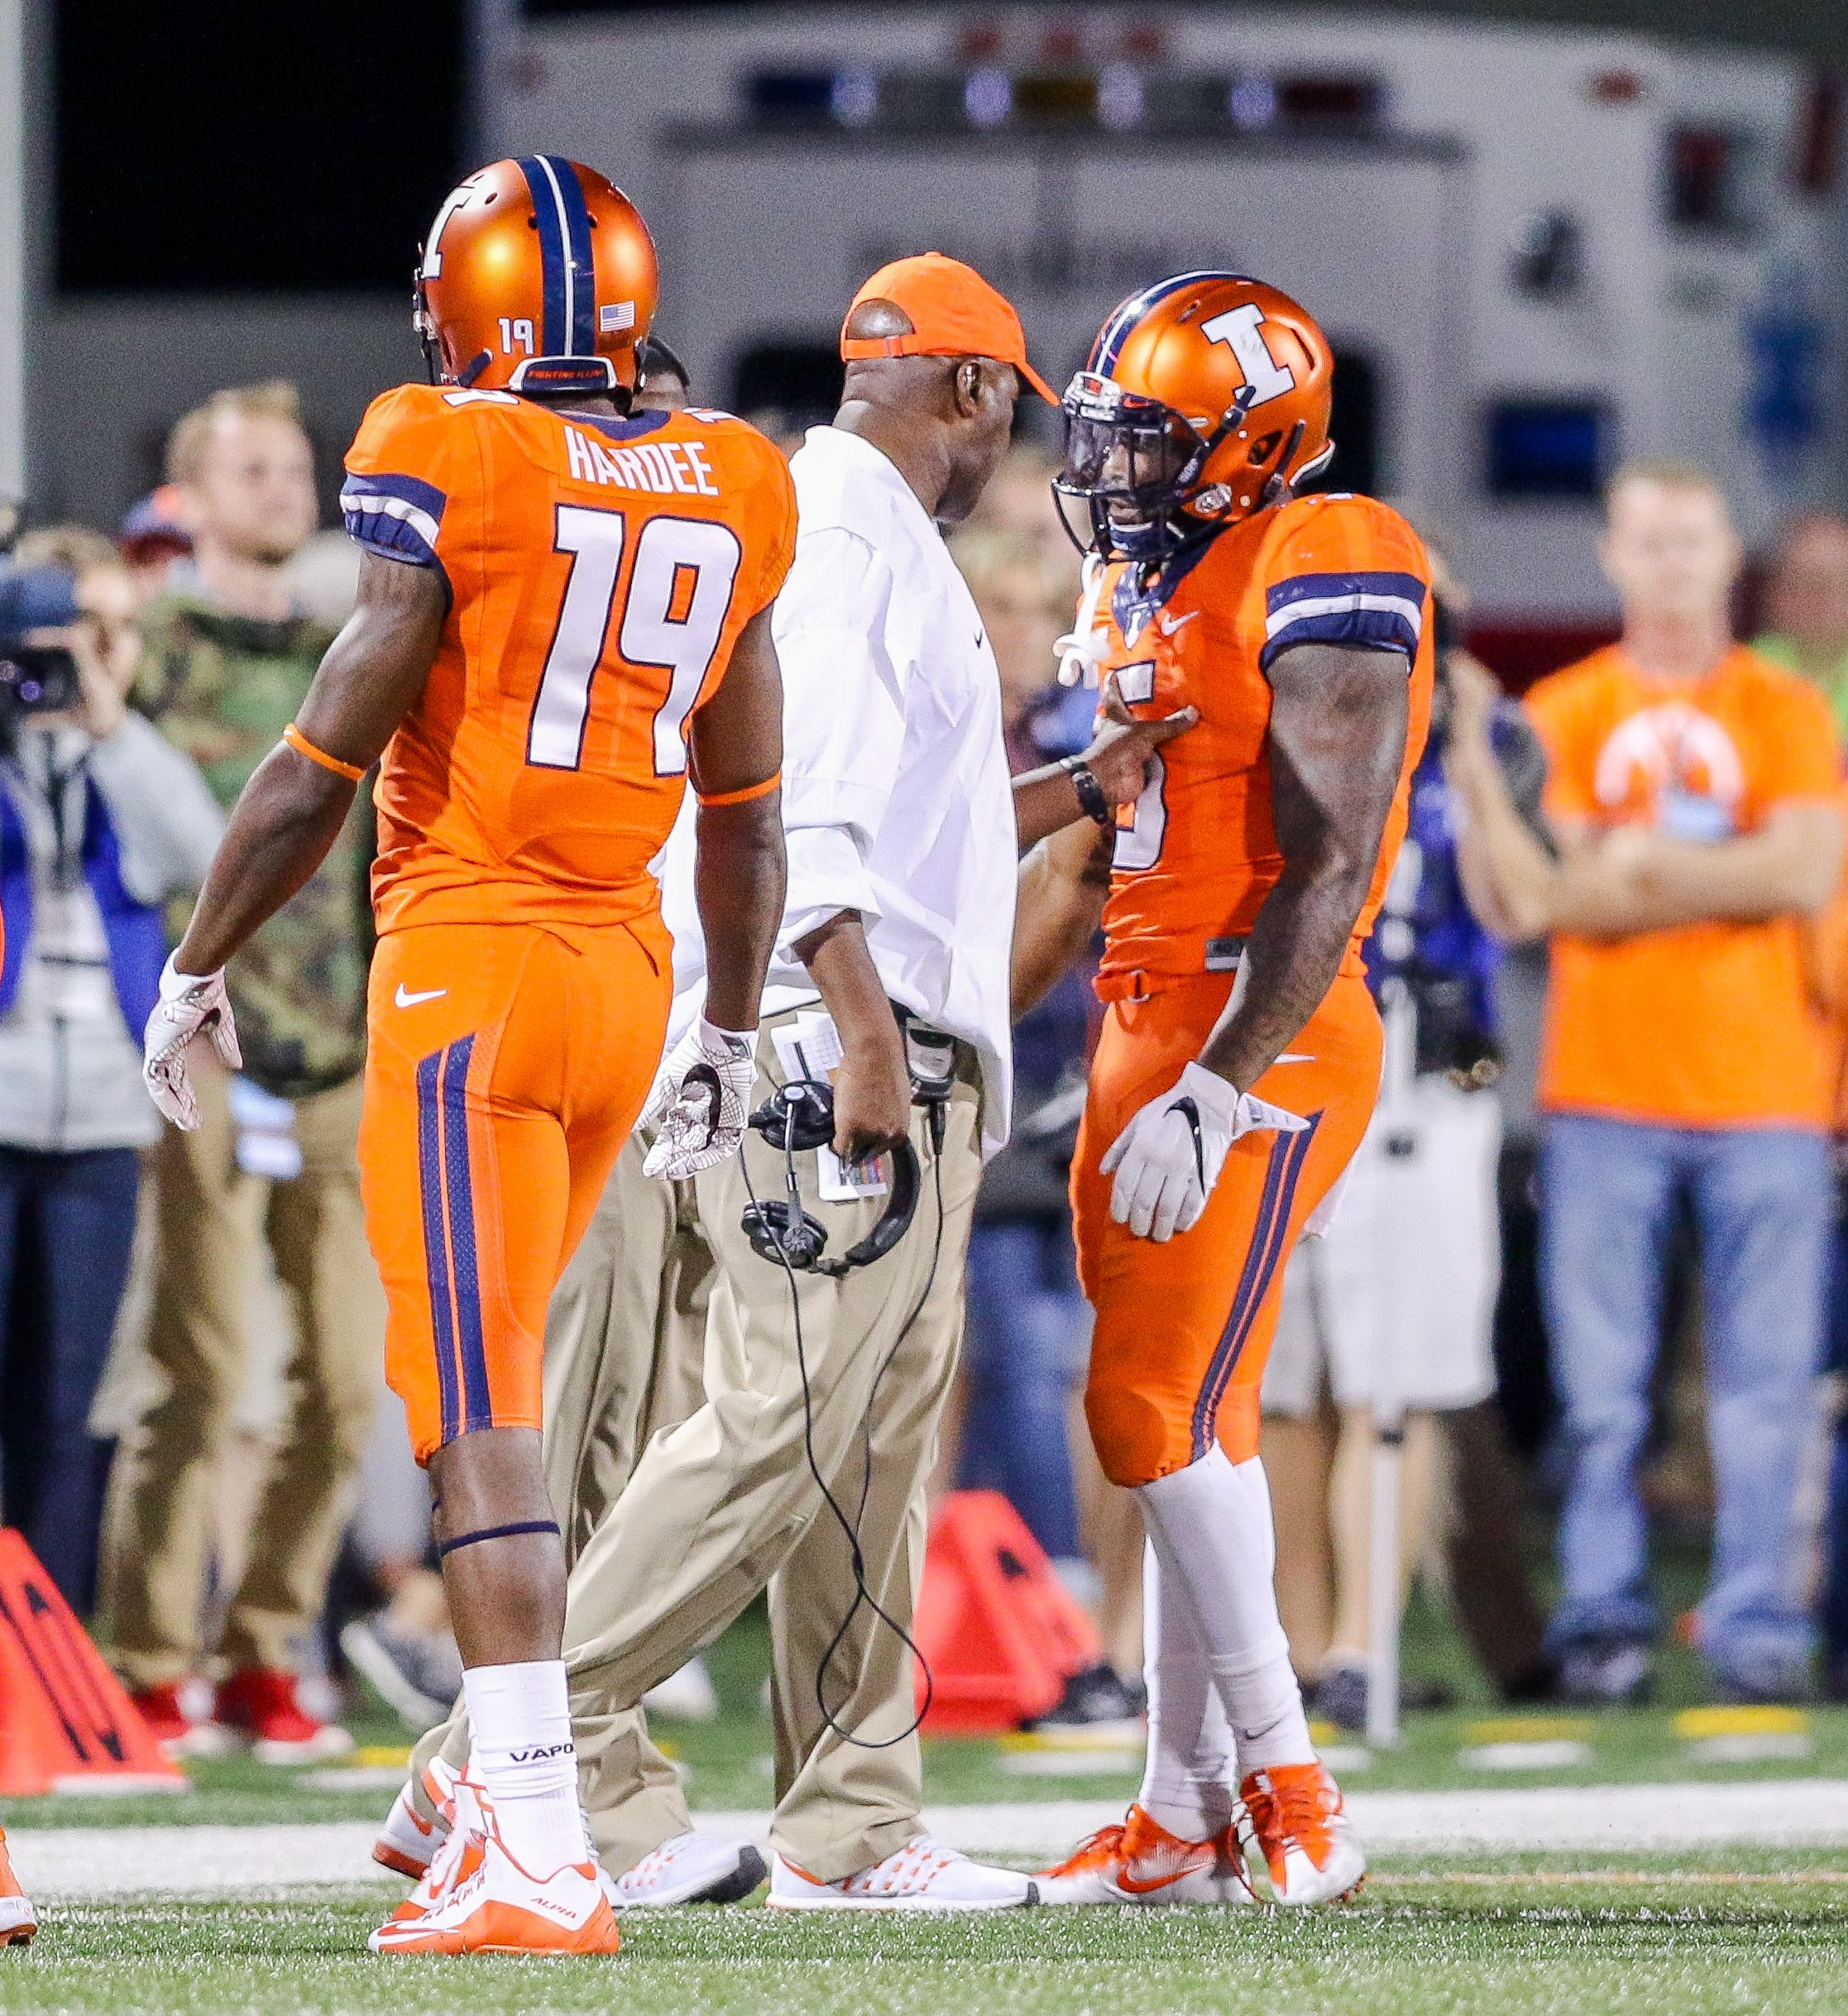 Illini head coach Lovie Smith admonishes Ke'Shawn Vaughn after the latter's personal foul Saturday night in Champaign (Vashoune Russell)